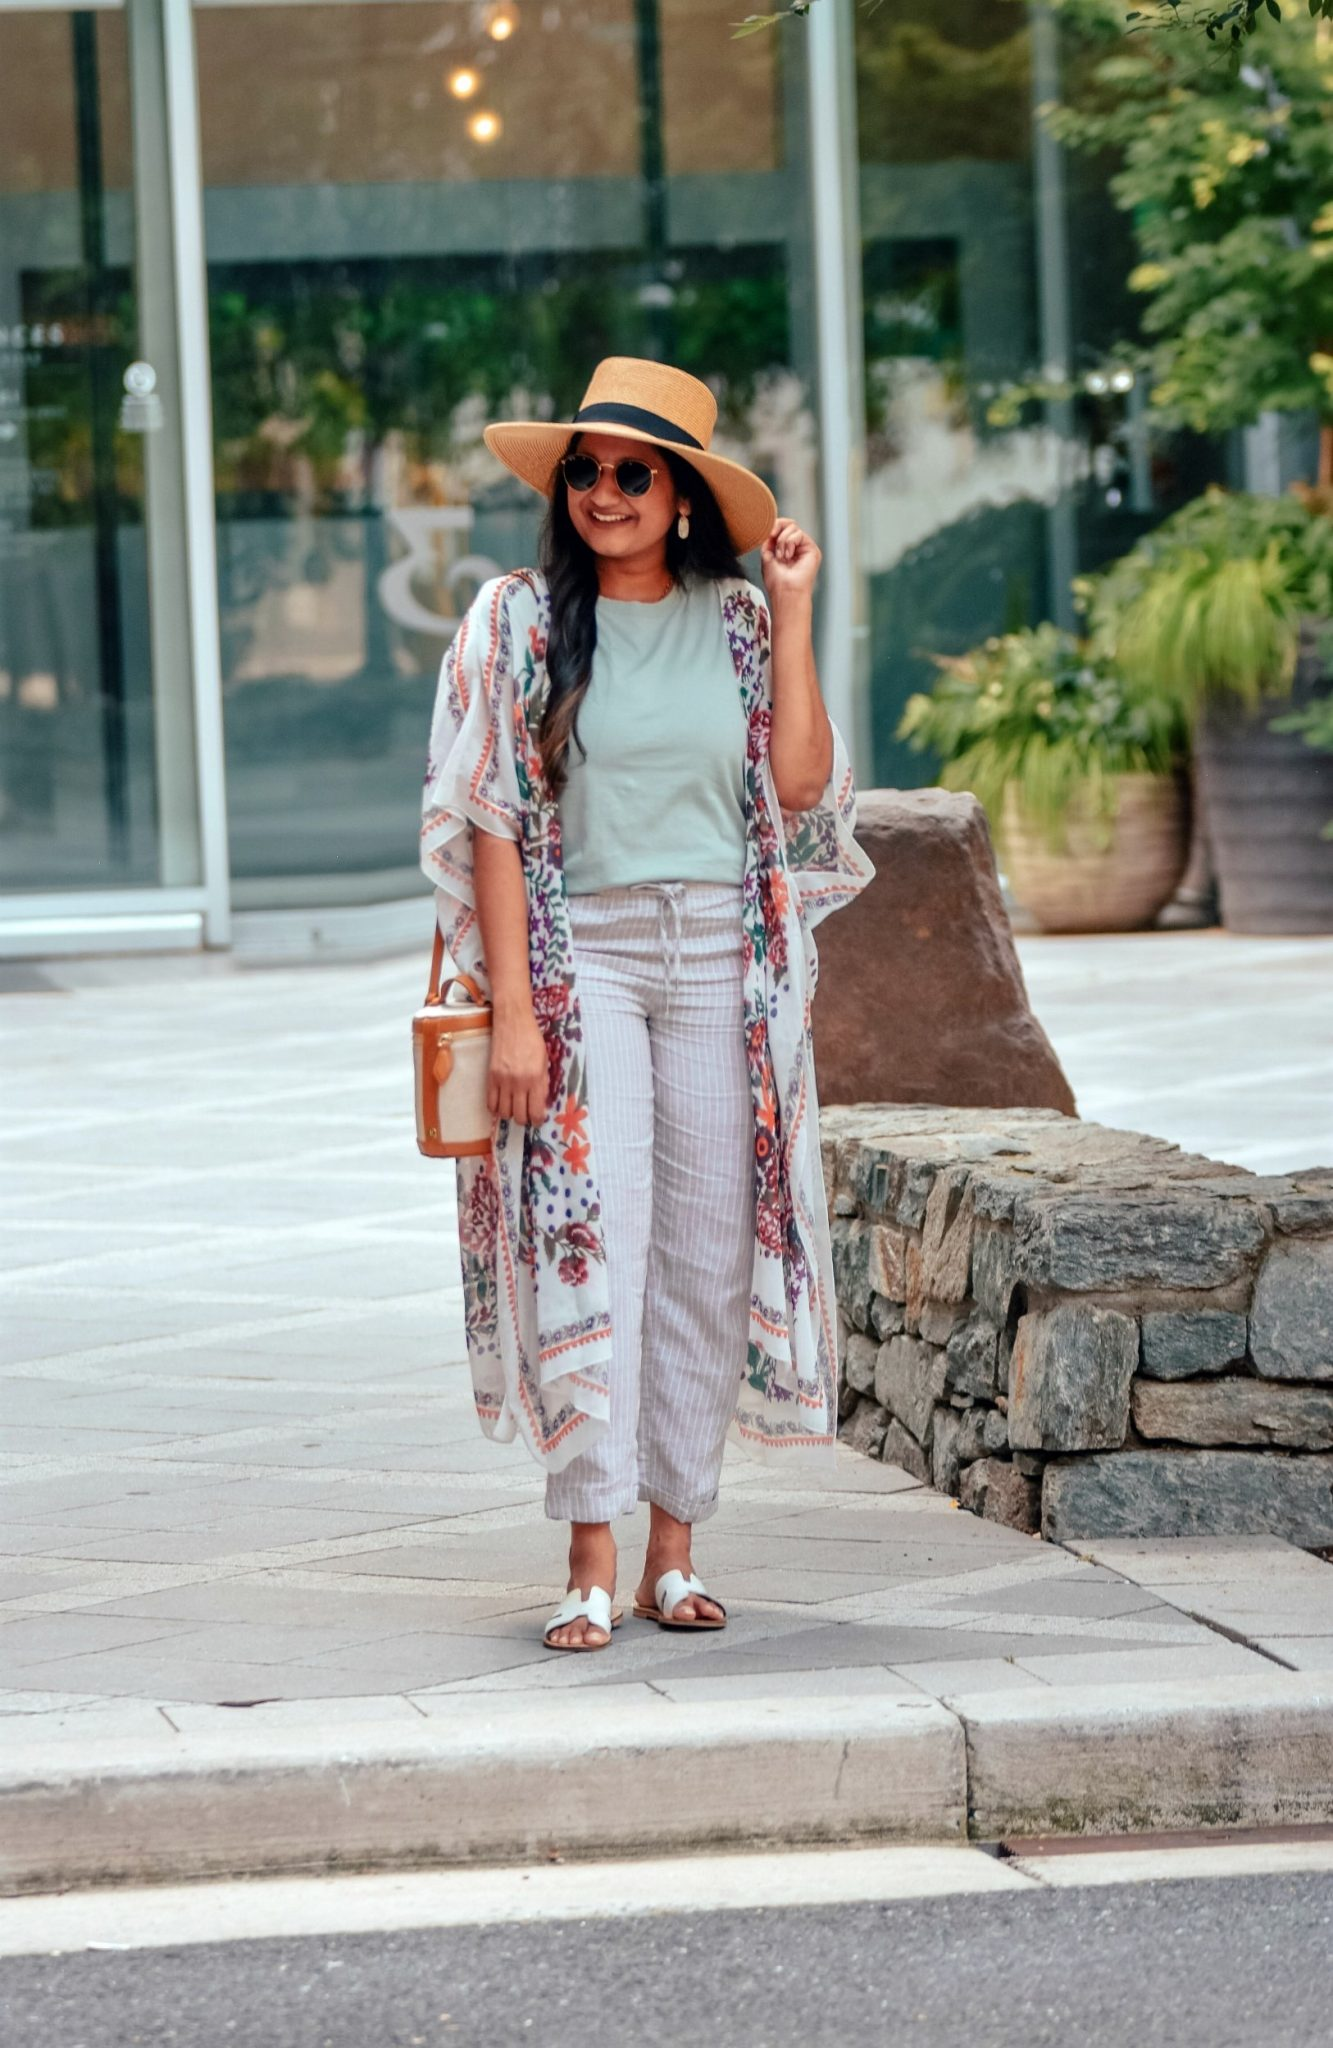 Wearing H&M Pull-on Linen Pants, Madewell Northside Vintage Tee,Hibluco Sheer Chiffon Floral Kimono,Steve Madden Greece Sandal 10 | Floral Kimono by popular Maryland fashion blog, Dreaming Loud: image of a woman walking outside by some shade umbrellas and wearing a Amazon Hibluco Women's Sheer Chiffon Floral Kimono, Madewell Northside Vintage Tee, H&M Linen Joggers, Amazon Steven Women's Greece Slides, Kendra Scott Lee Gold Drop Earrings In White Kyocera Opal, Paravel Crossbody Capsule, and Nordstrom Joanna Straw Hat BRIXTON.